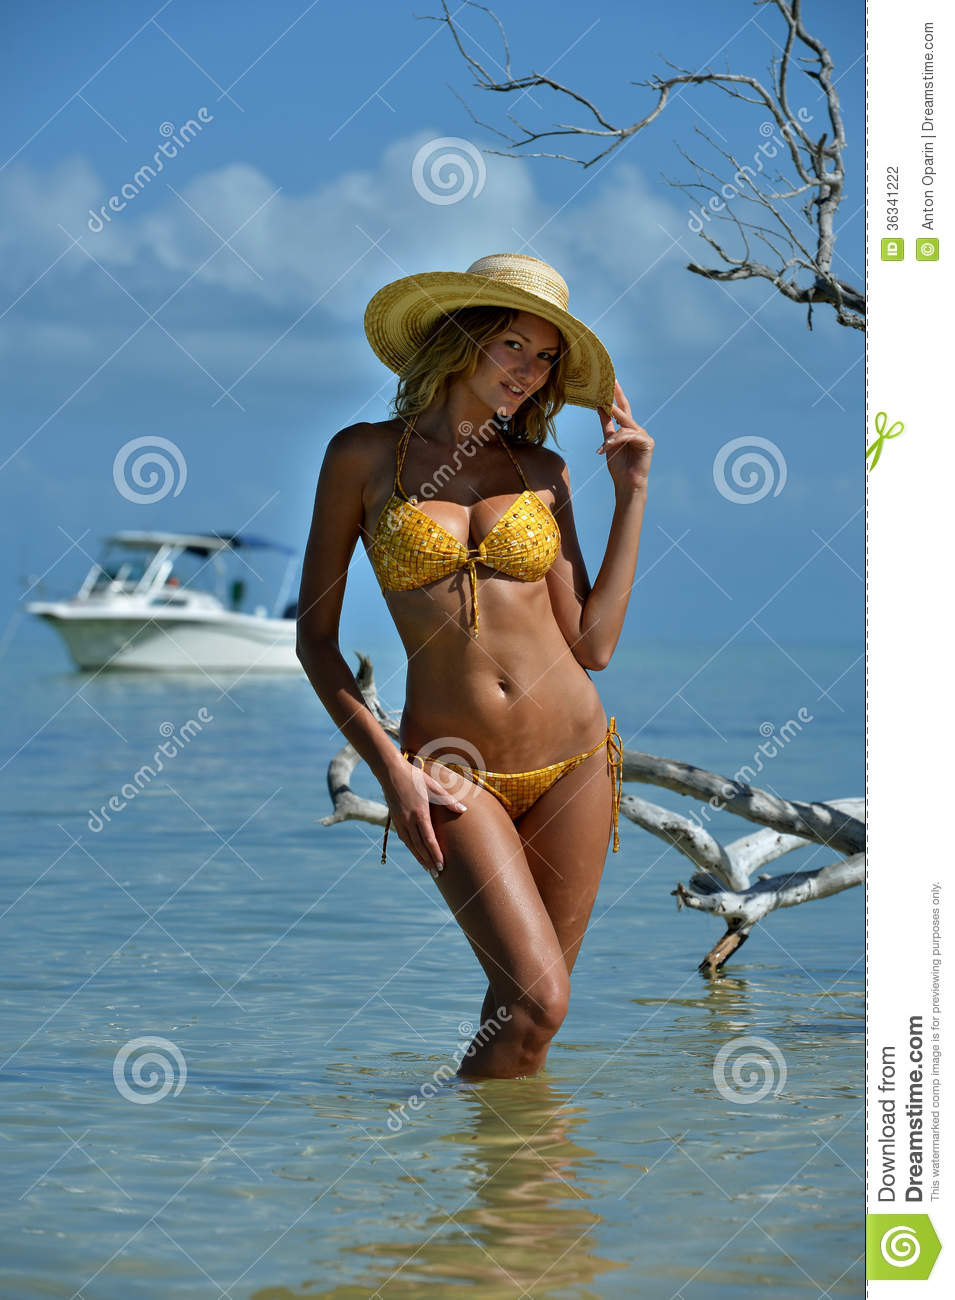 Bikini model in straw hat posing in front of camera at tropical beach location